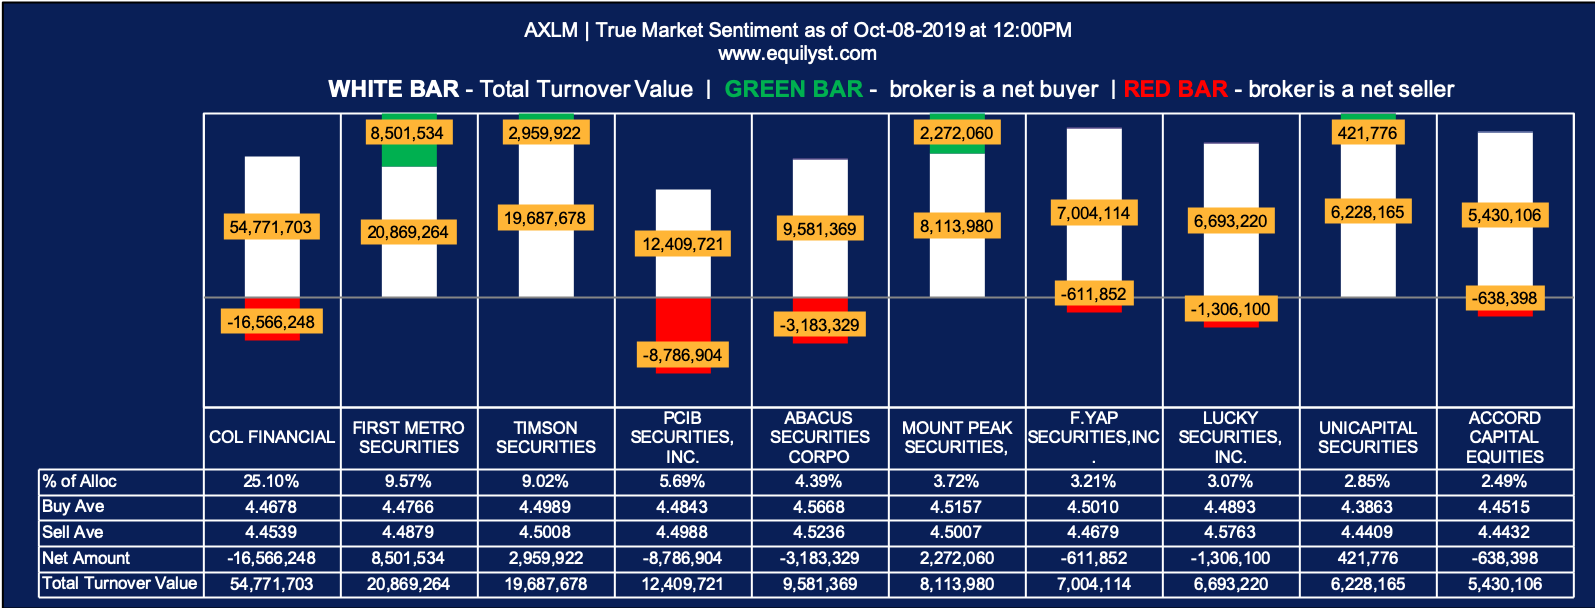 Axelum Resources Corp (AXLM) - True Market Sentiment 1 - 10.8.2019